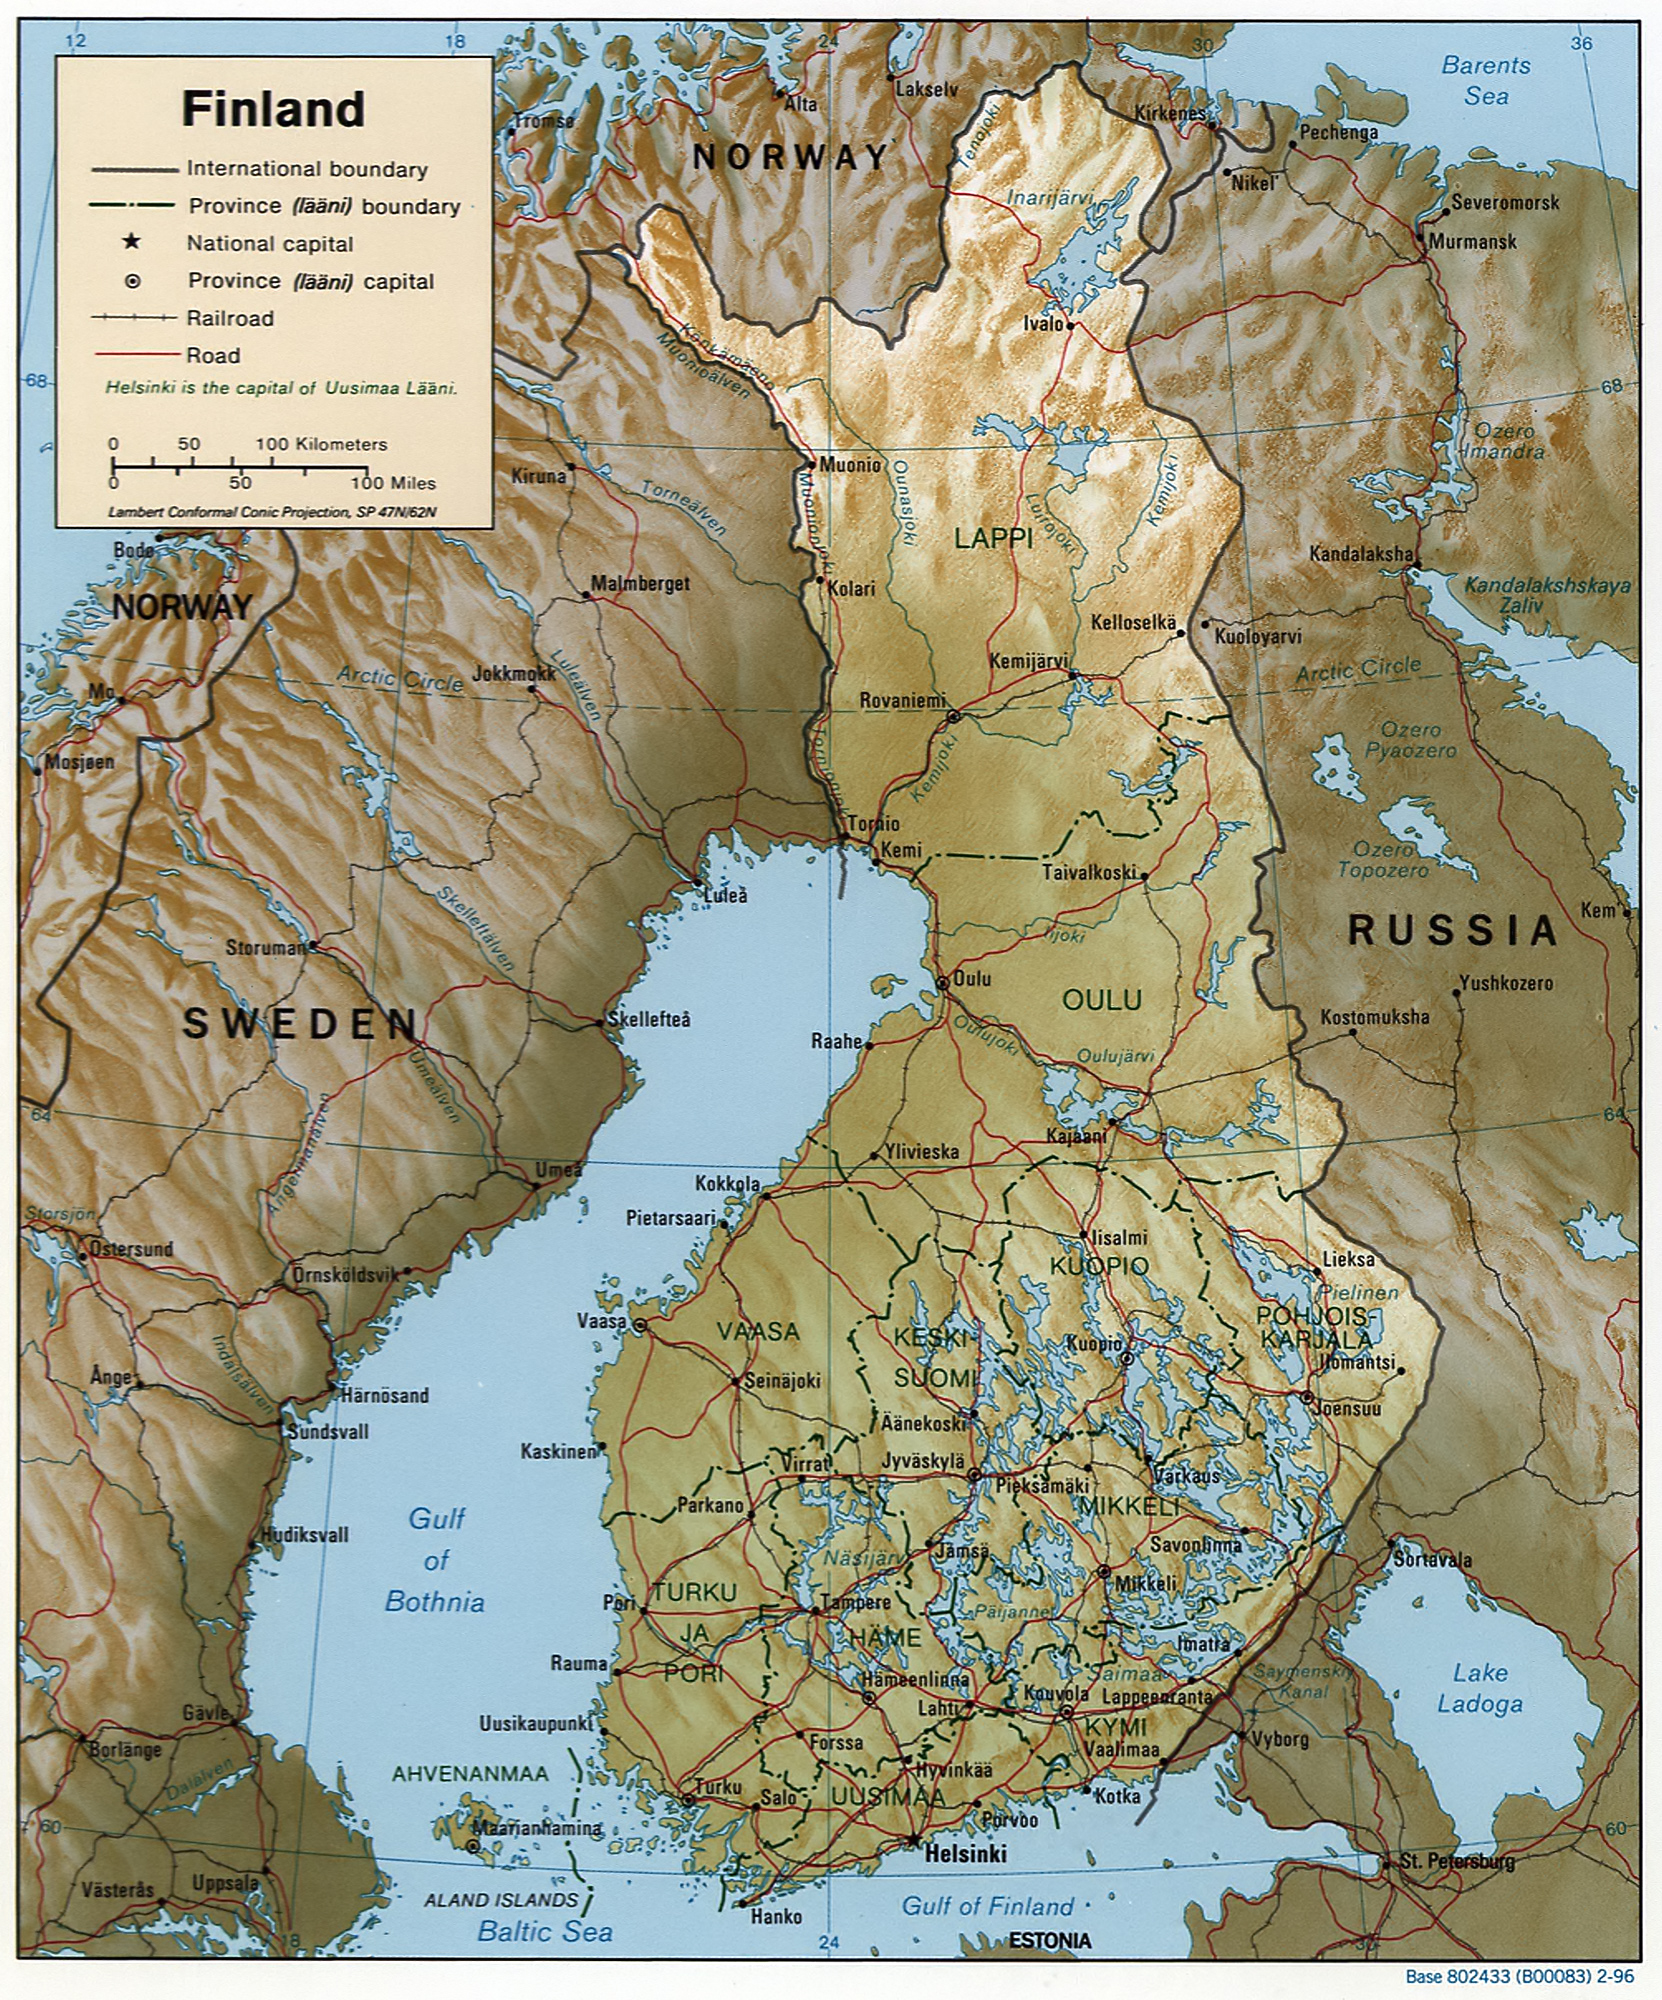 Atlas of Finland Wikimedia Commons